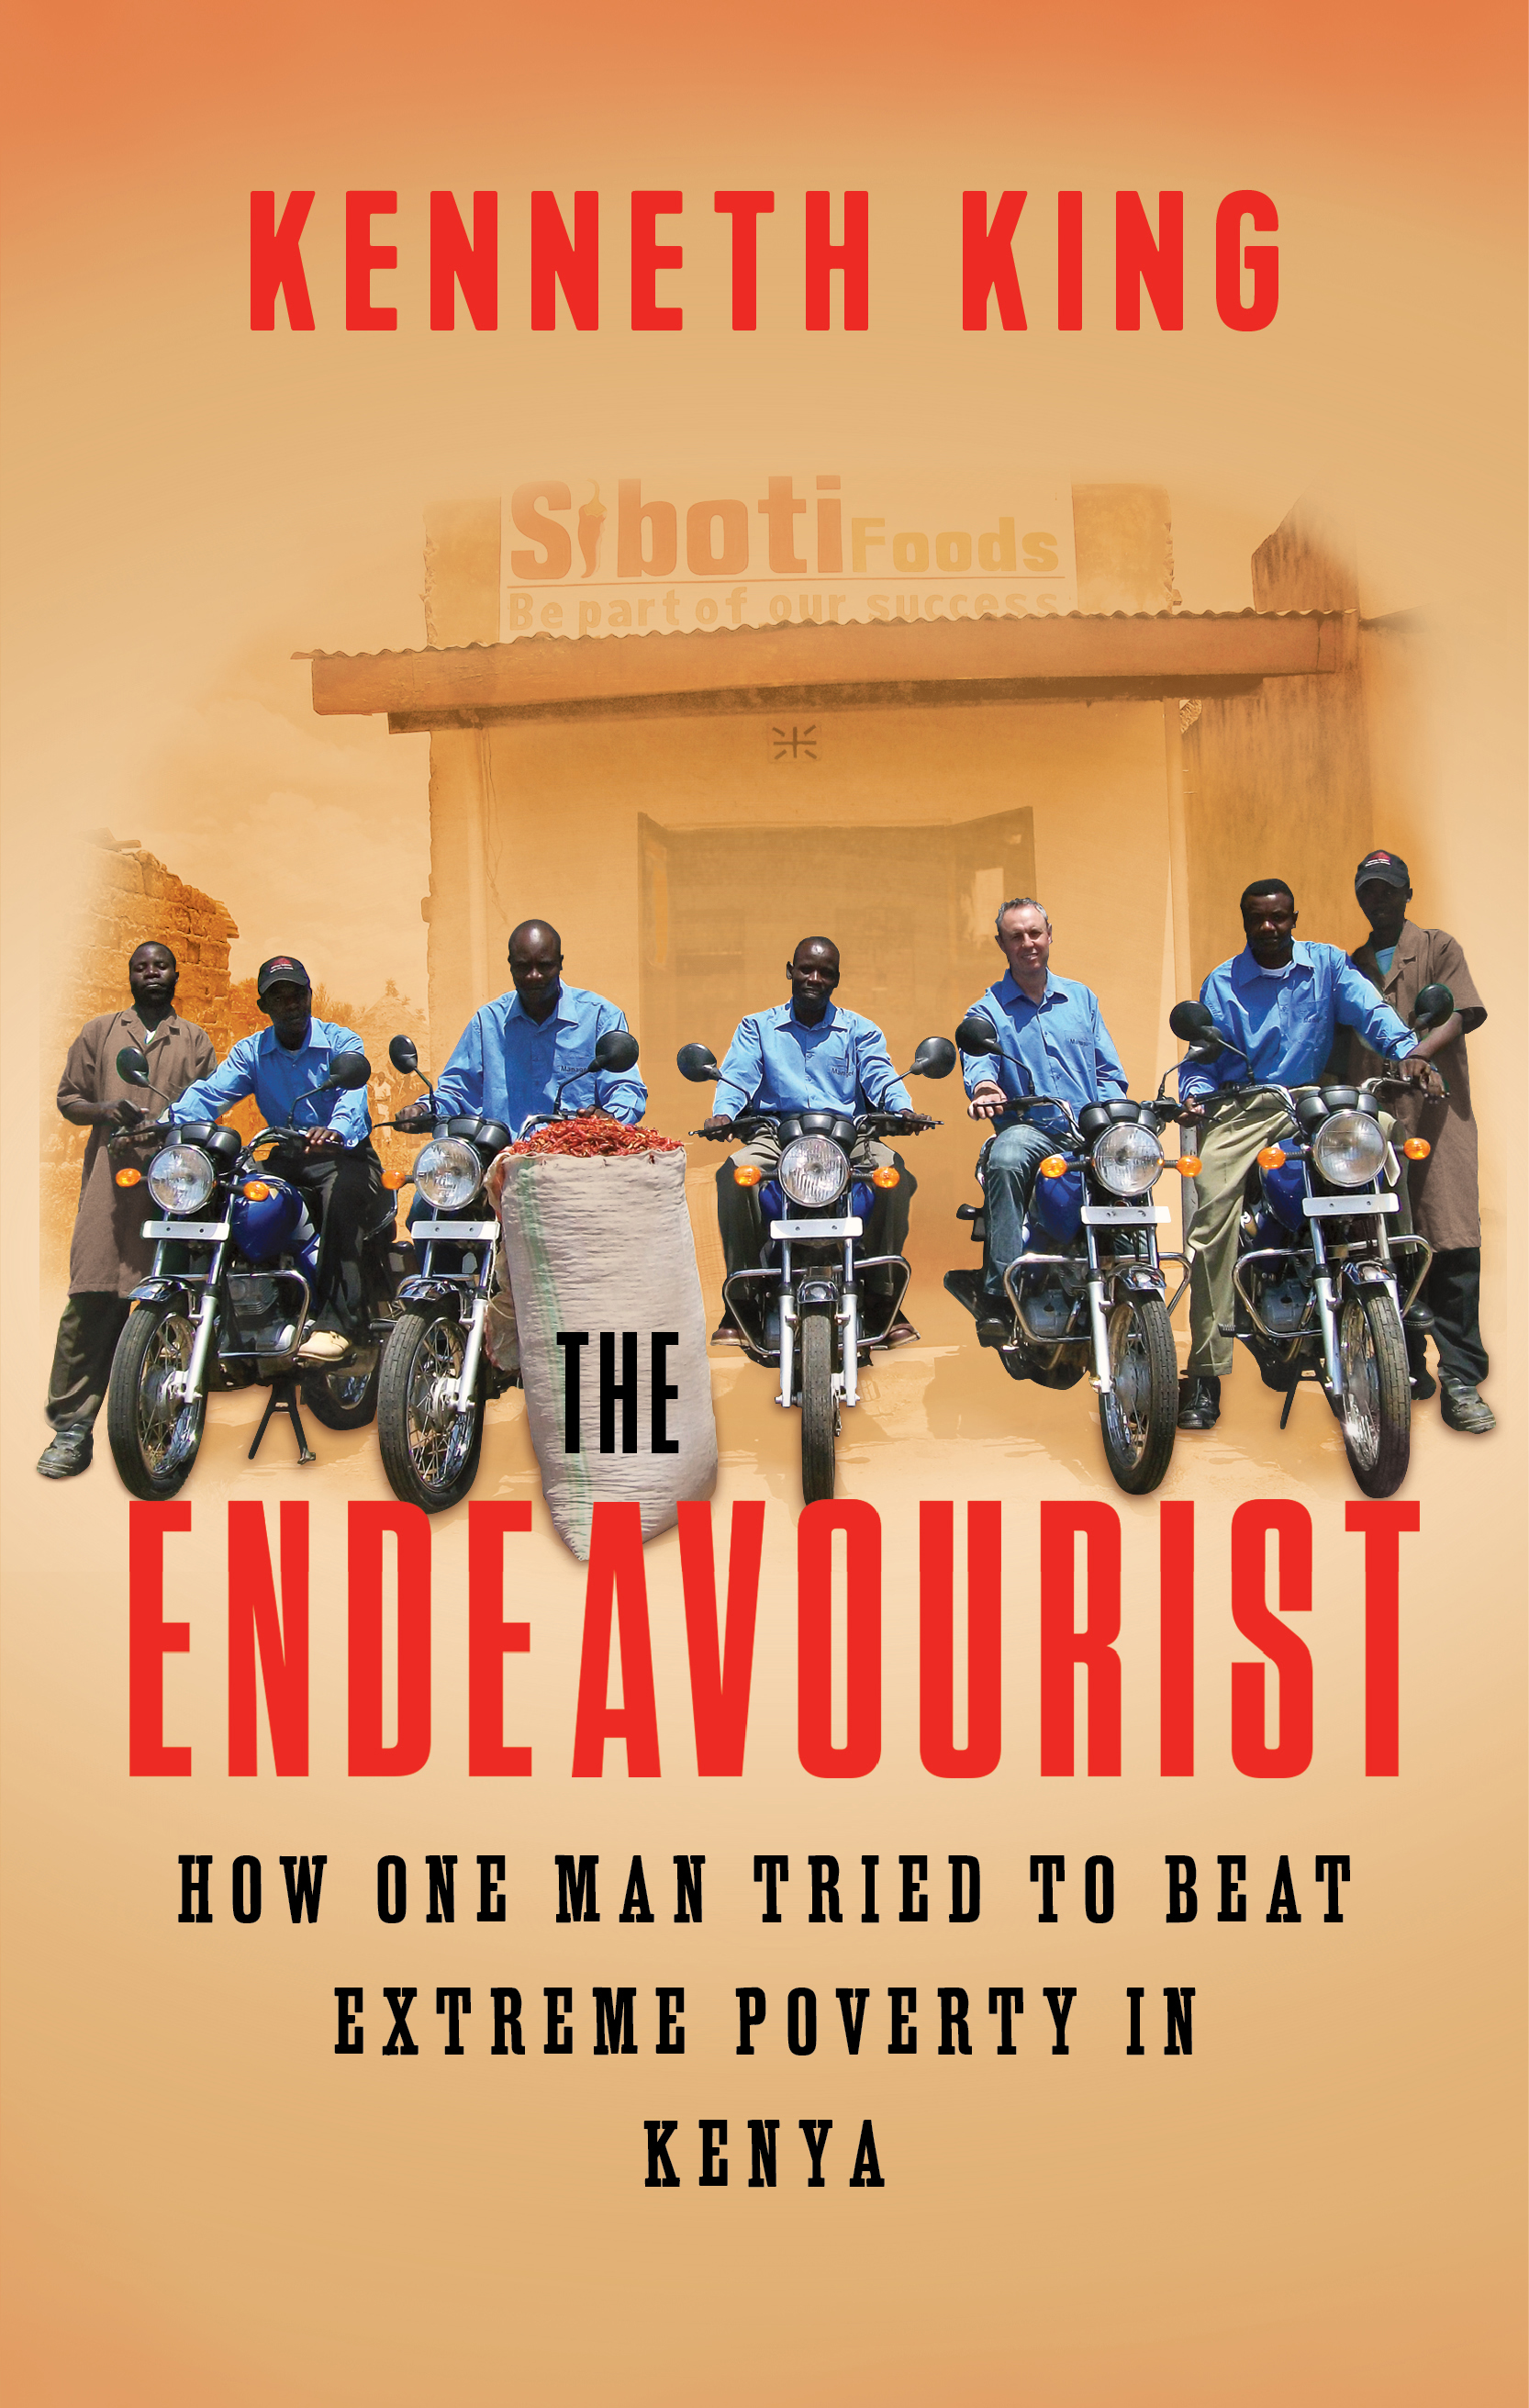 Case Study-THE ENDEAVOURIST